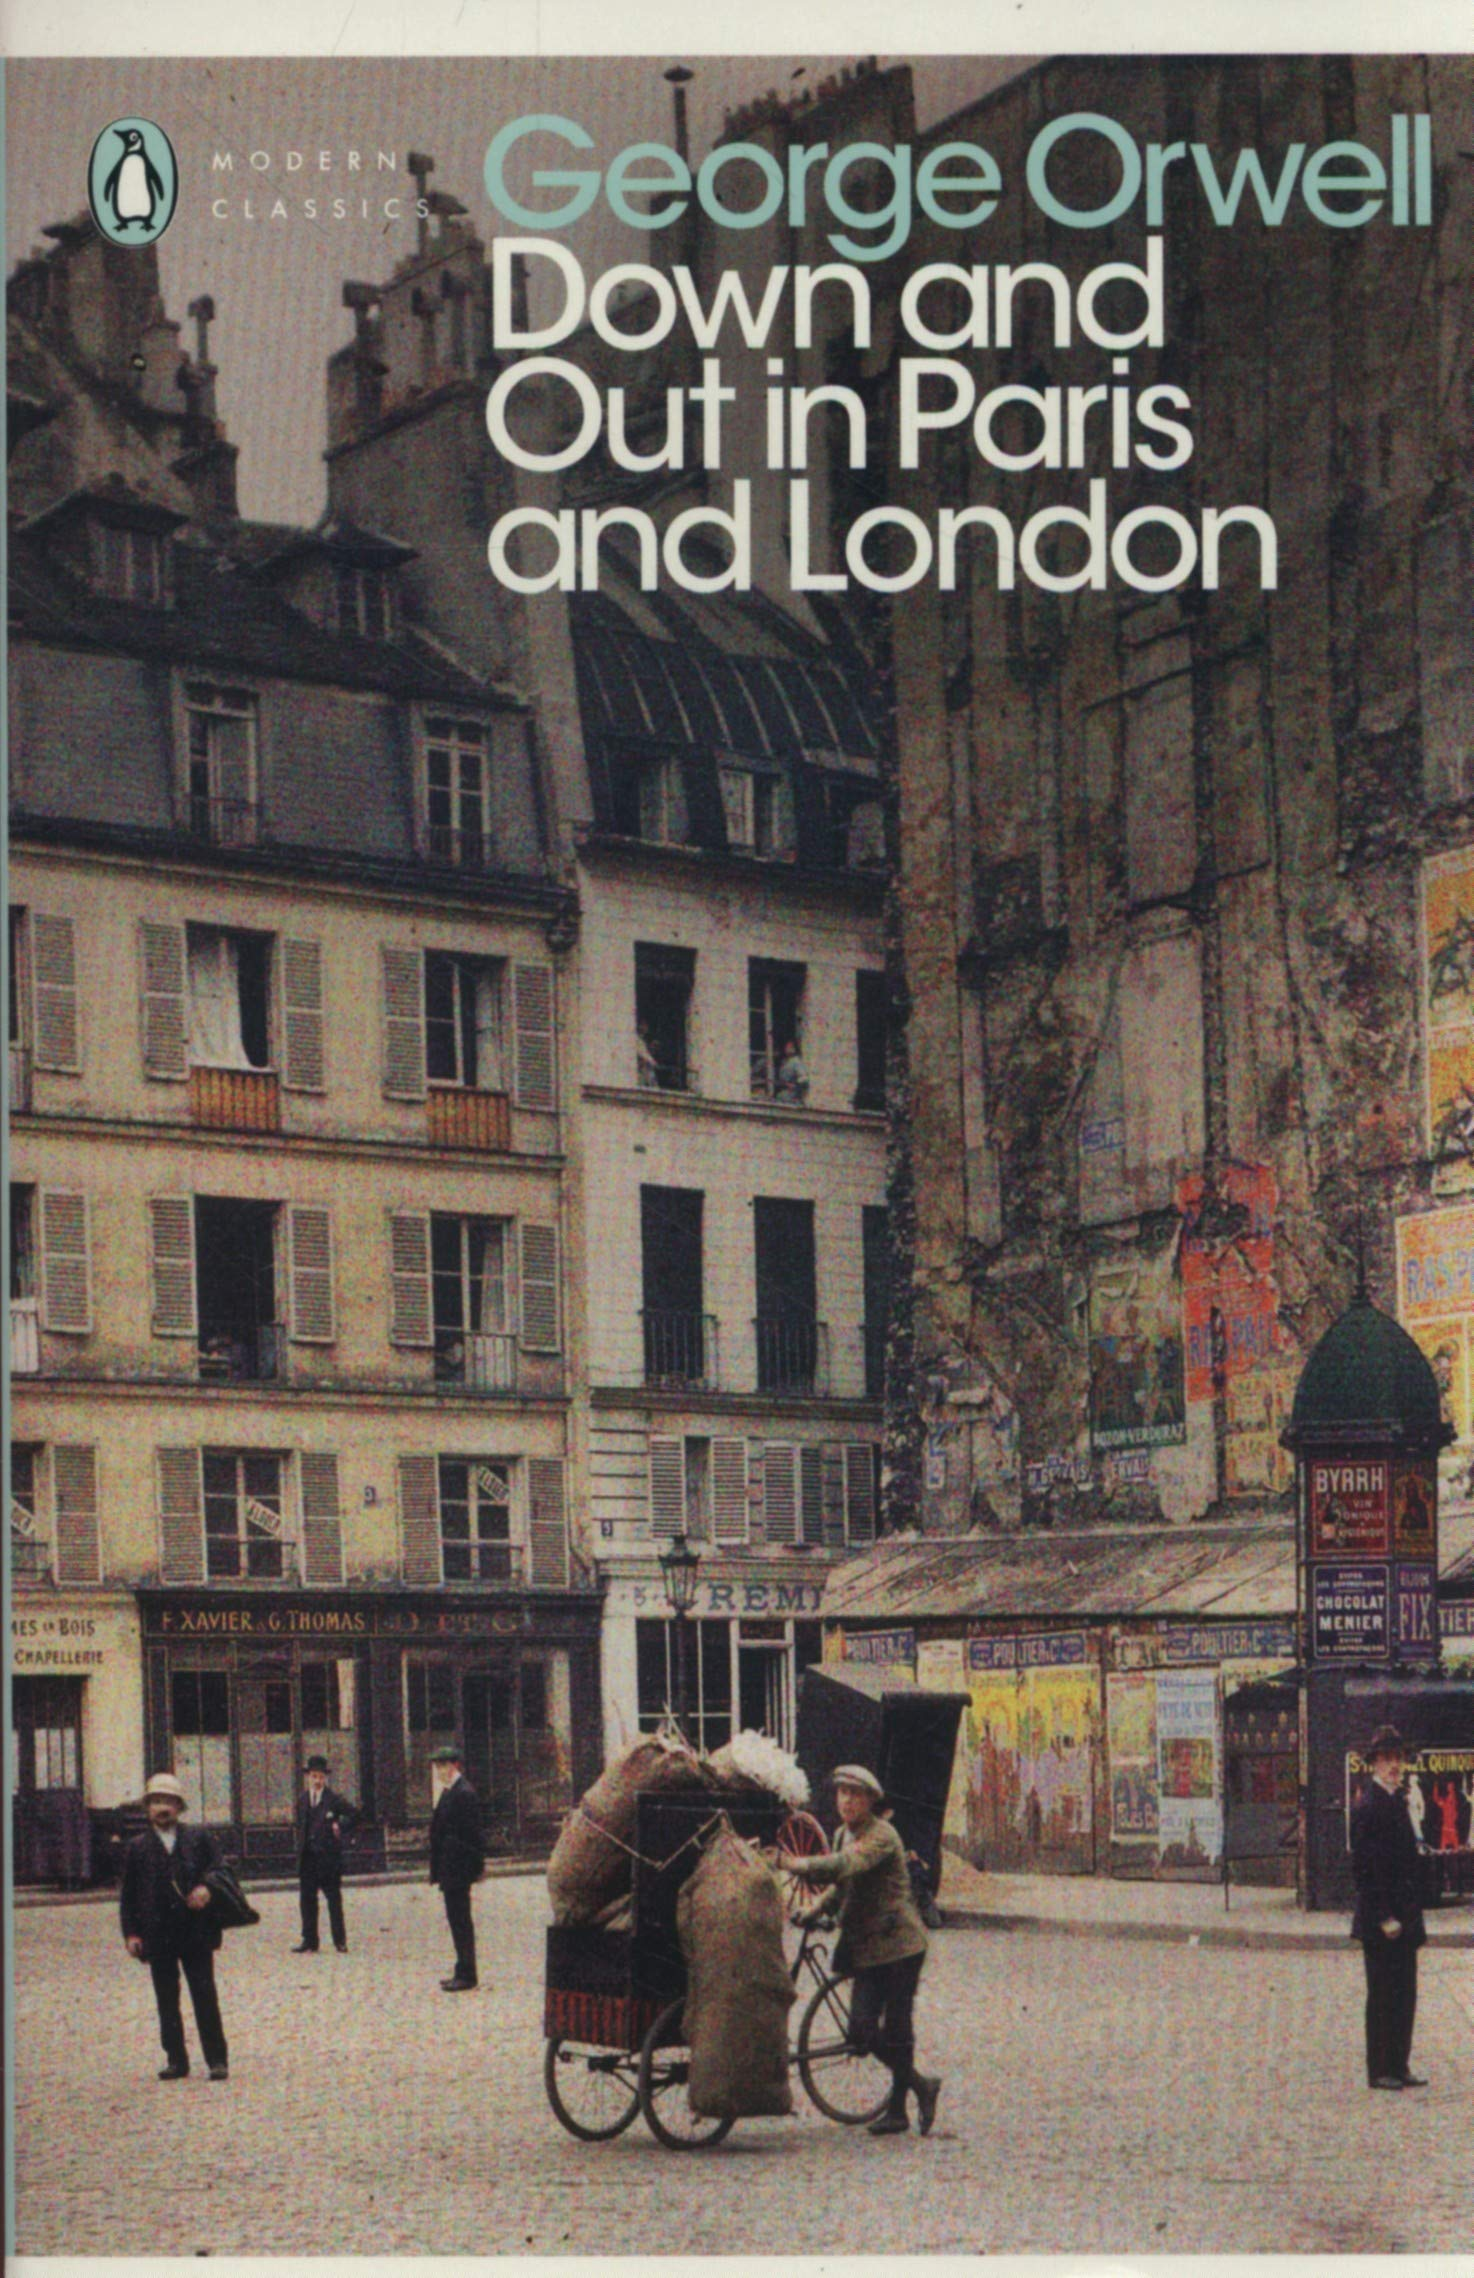 Down and Out in Paris and London Penguin Modern Classics: Amazon.es: George Orwell: Libros en idiomas extranjeros